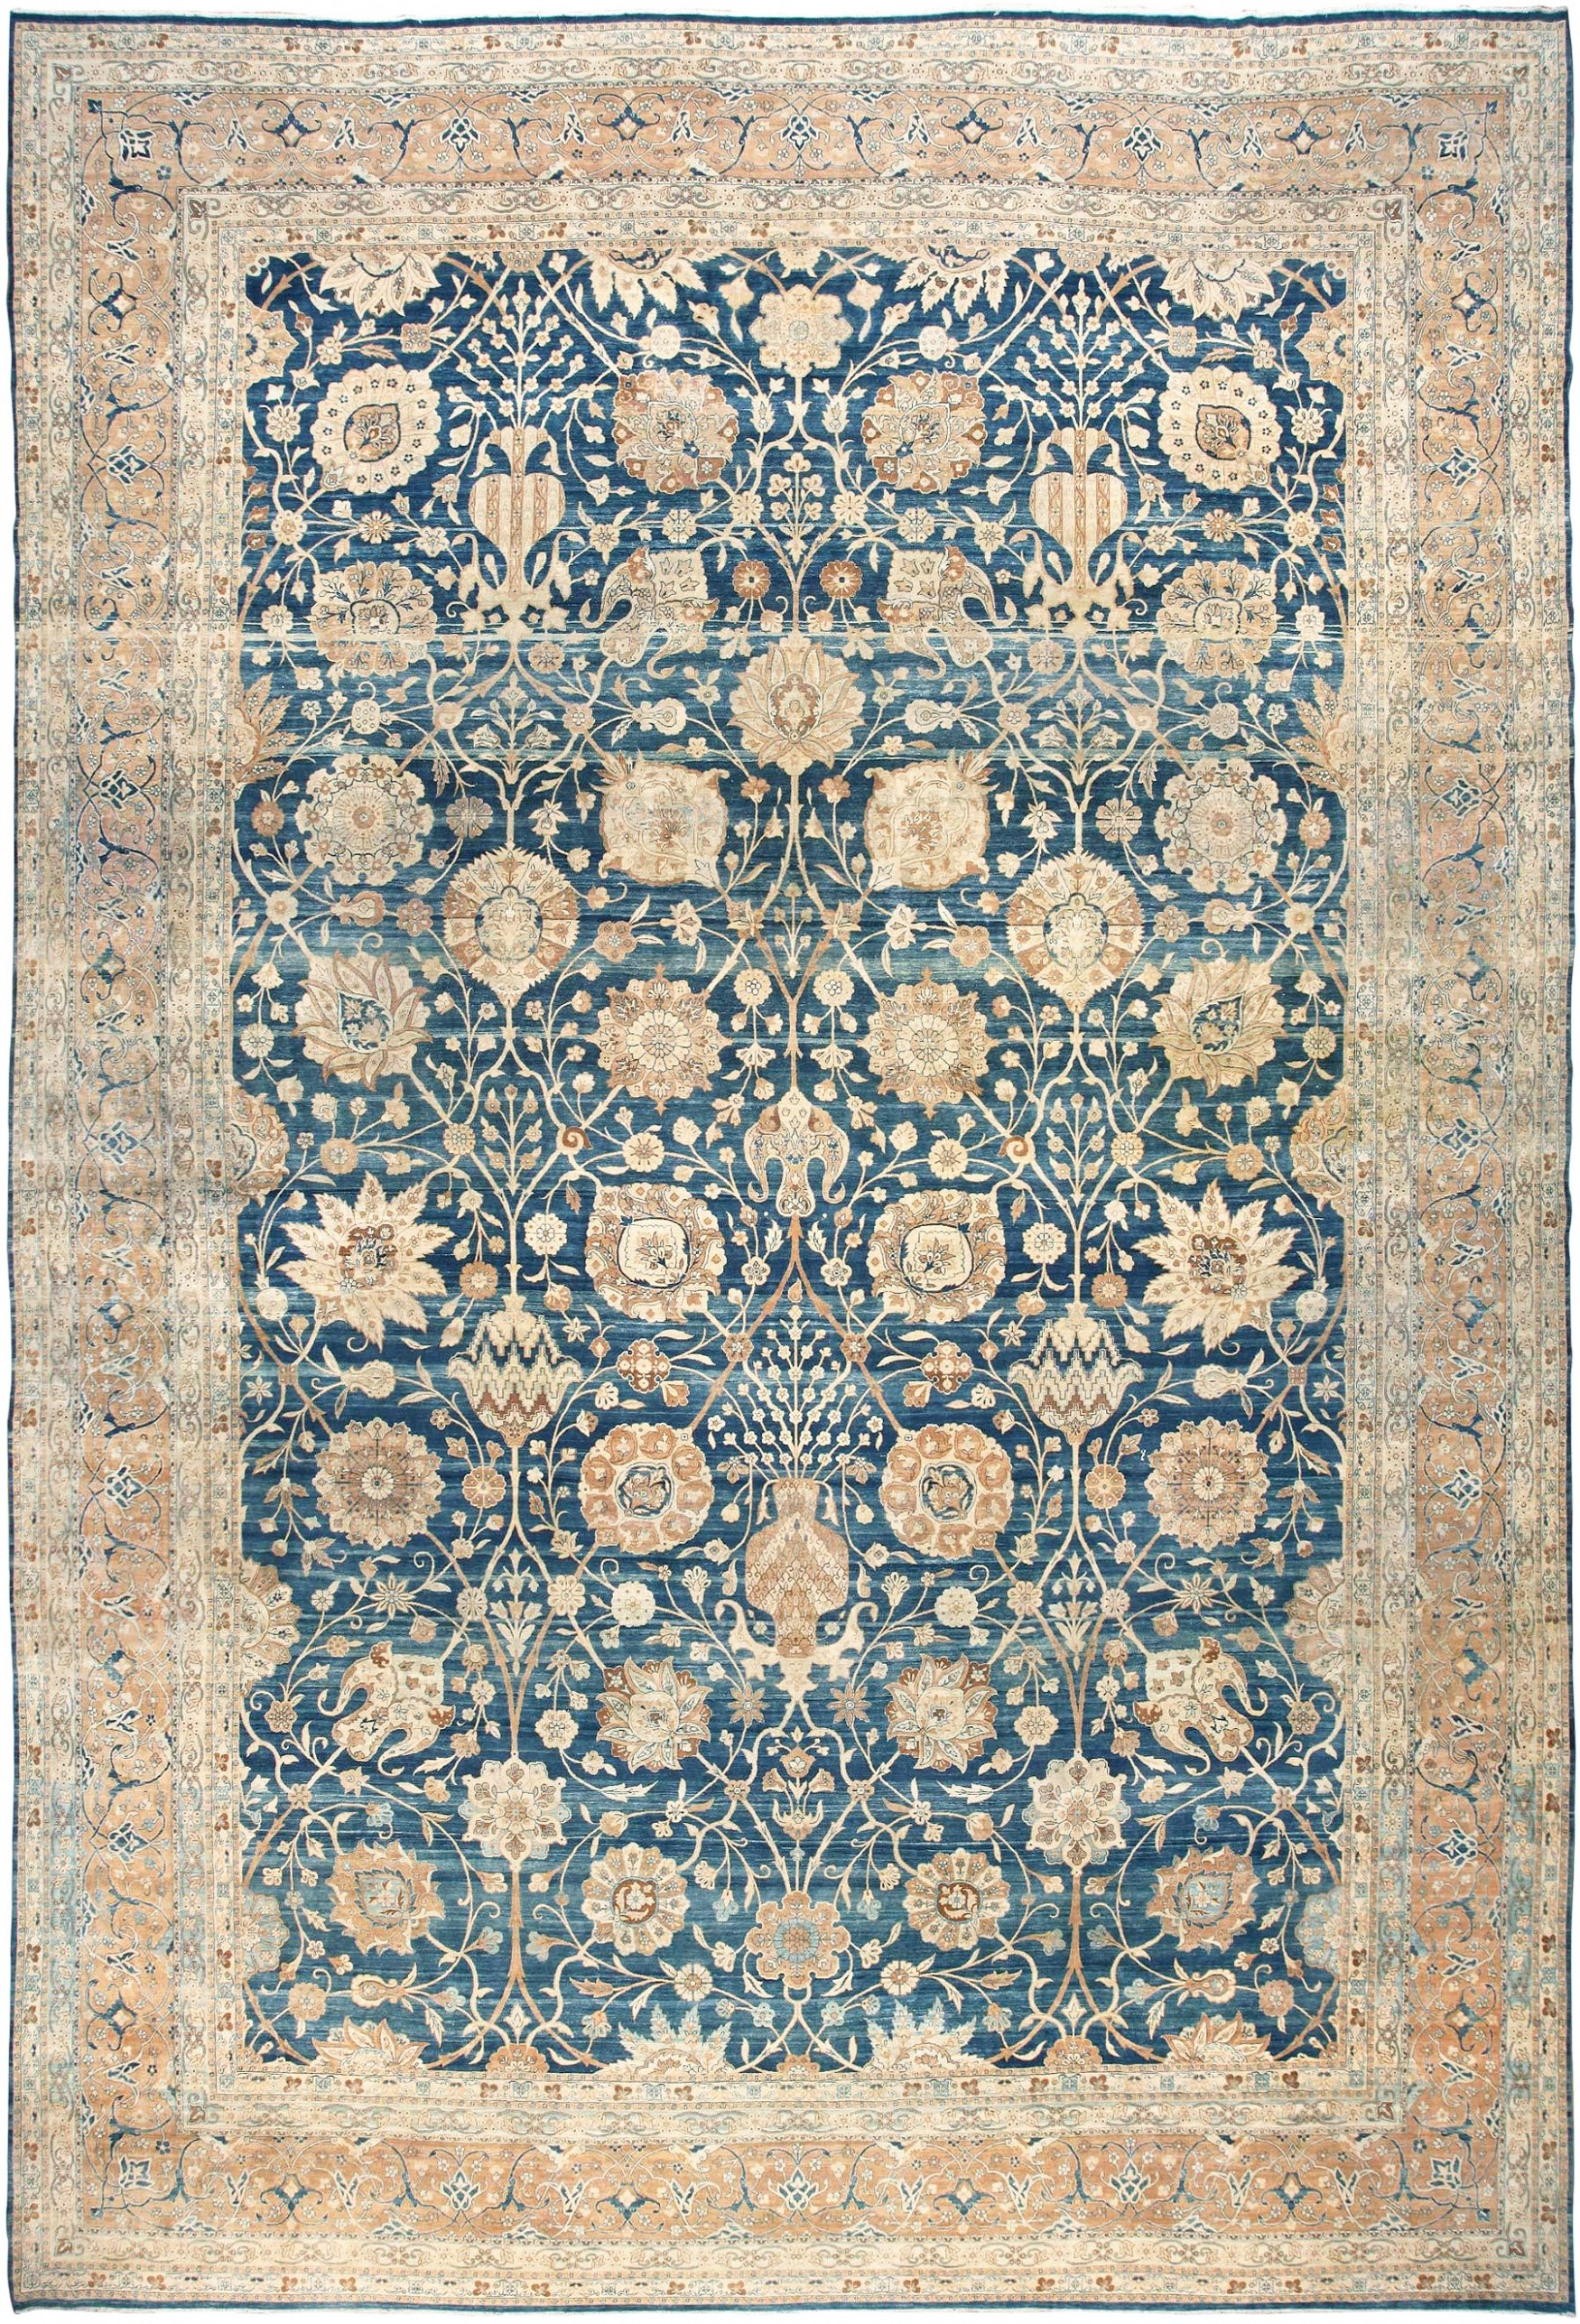 Persian Rugs Blue Roselawnlutheran In Blue Persian Rugs (View 7 of 15)